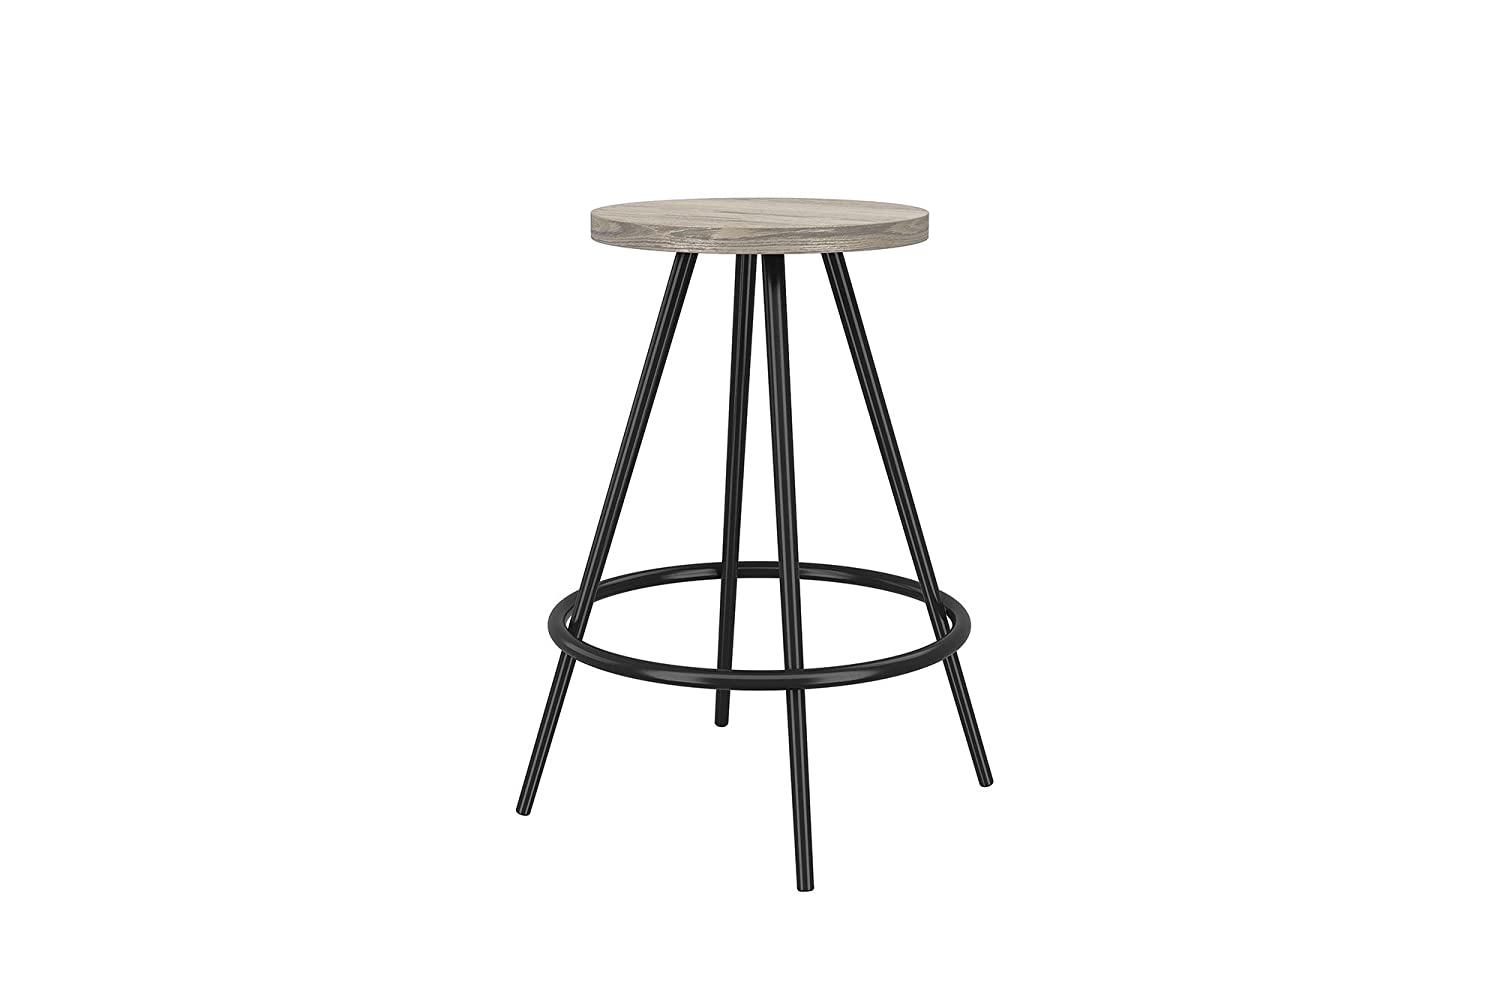 Novogratz Leo Farmhouse 29.5-Inch Bar Stool with Footrest, Rustic and Modern Style, Black Metal Frame with Grey Wood Seat S015101N